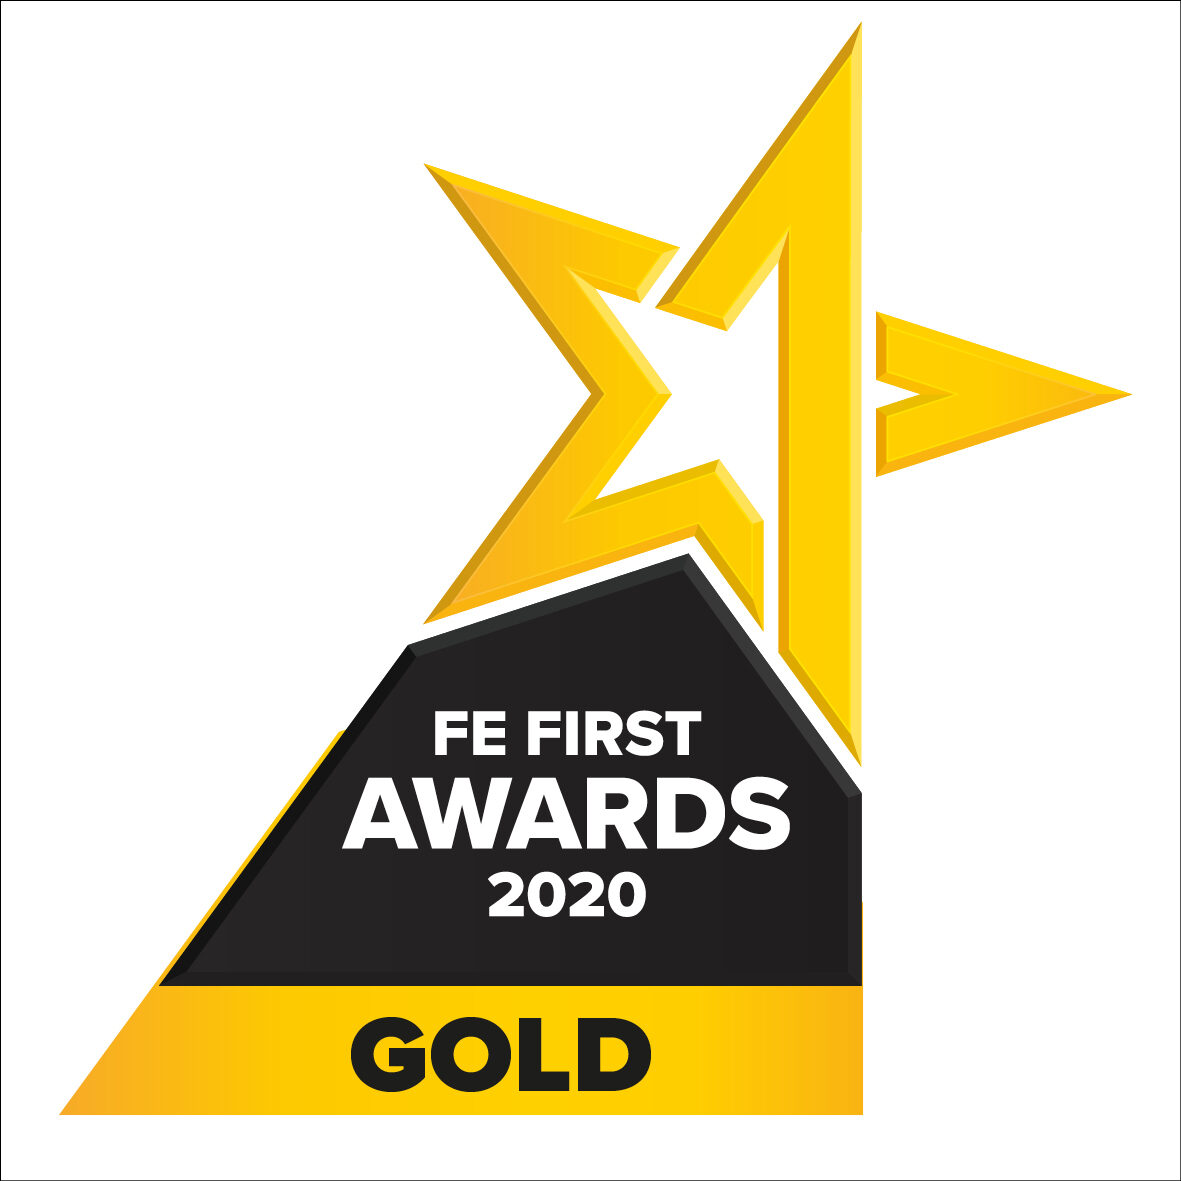 FE Firsts Gold